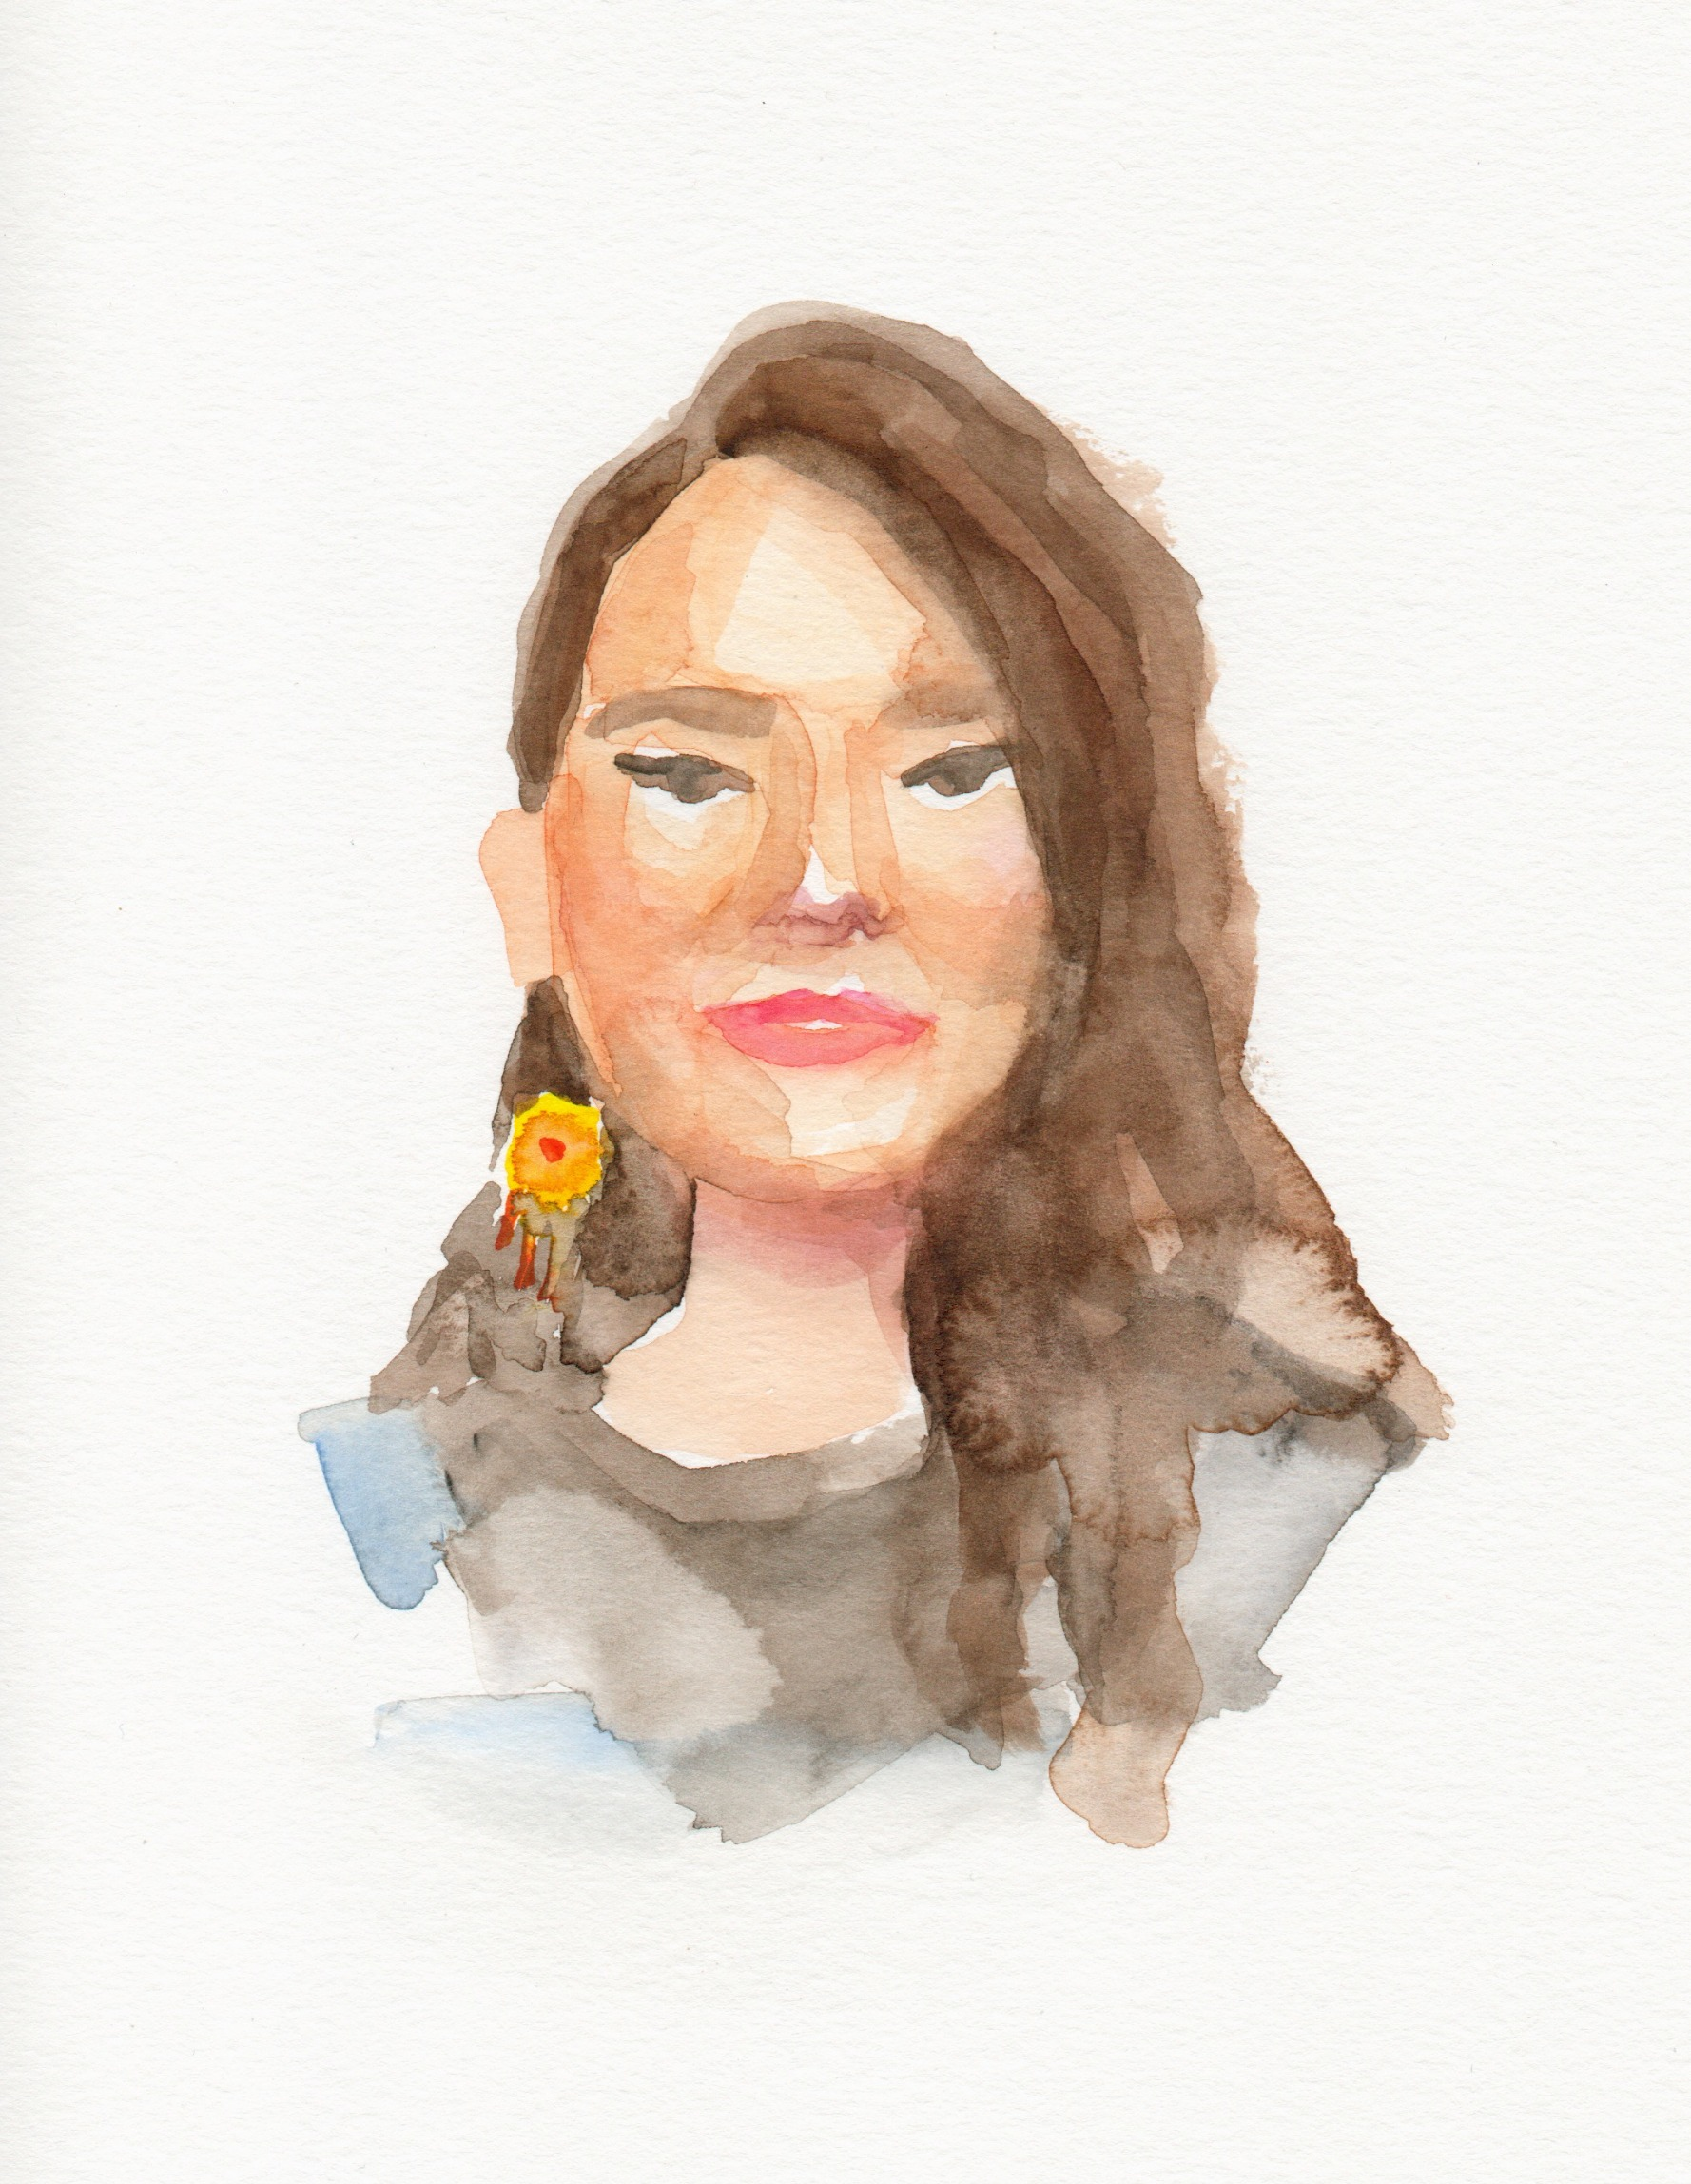 Yexenia, Watercolor (25 minutes on Insta